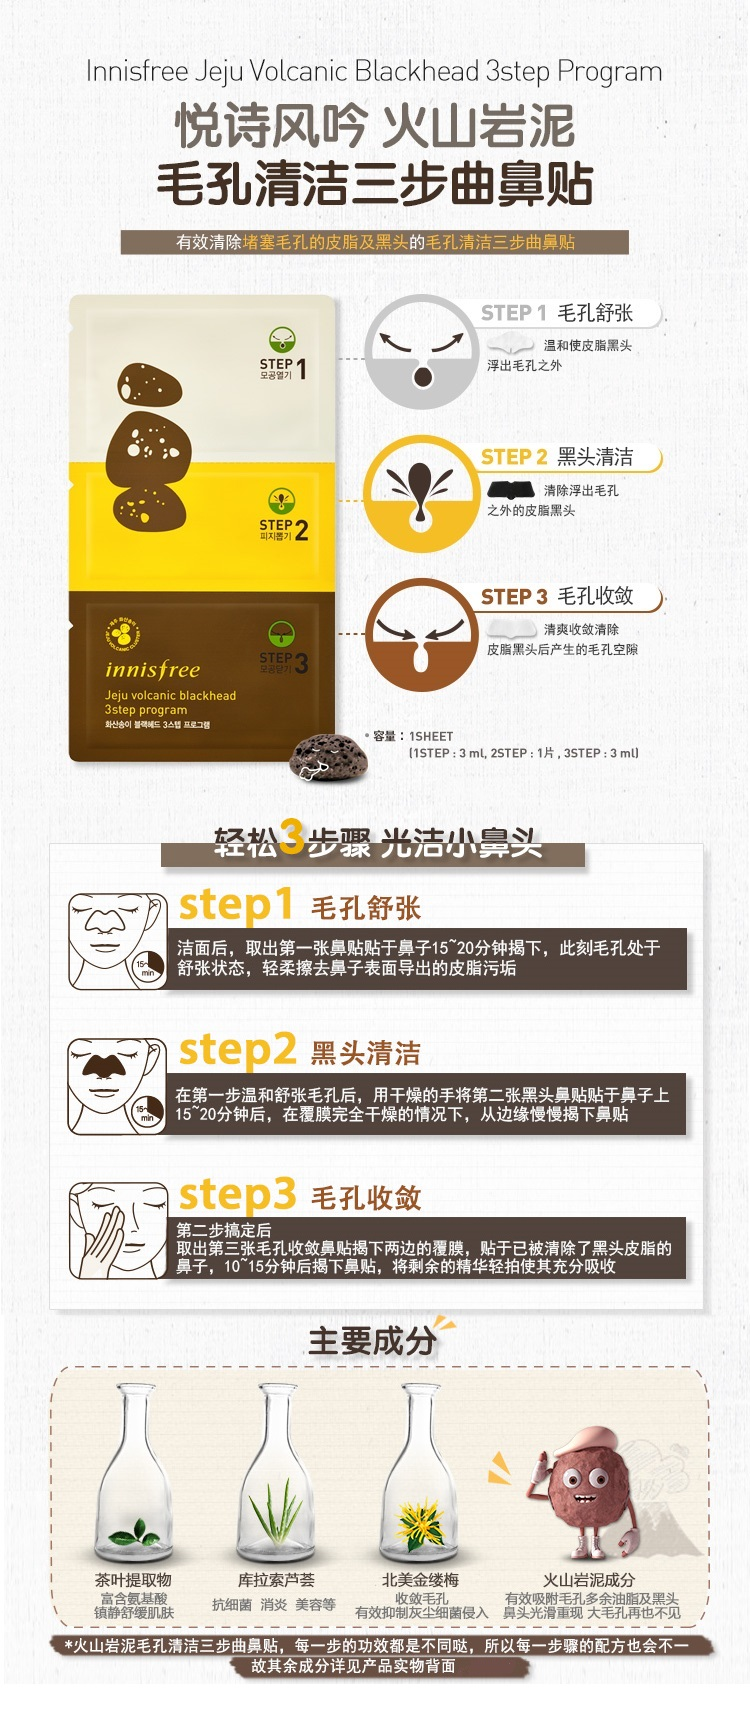 Innisfree jeju volcanic blackhead 3 step program step 3 tightens the pores in the area being treated sciox Choice Image